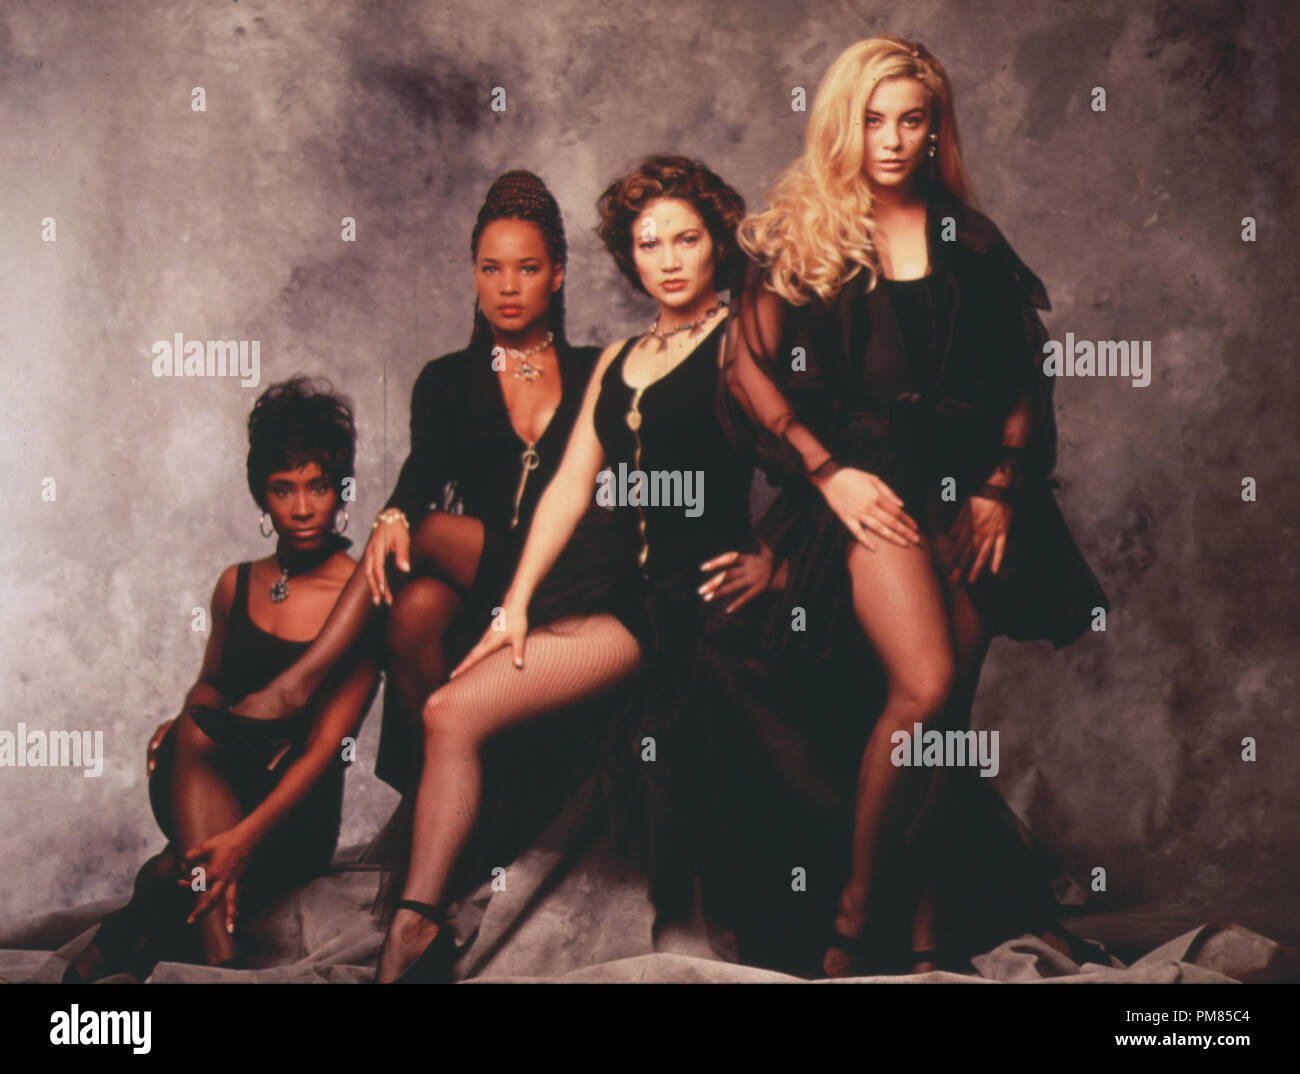 Film Still Or Publicity Still From In Living Color Fly Girls Jennifer Lopez 1992 Fox Photo Credit Wayne Williams All Rights Reserved File Reference 31487 112tha For Editorial Use Only Stock Photo Alamy